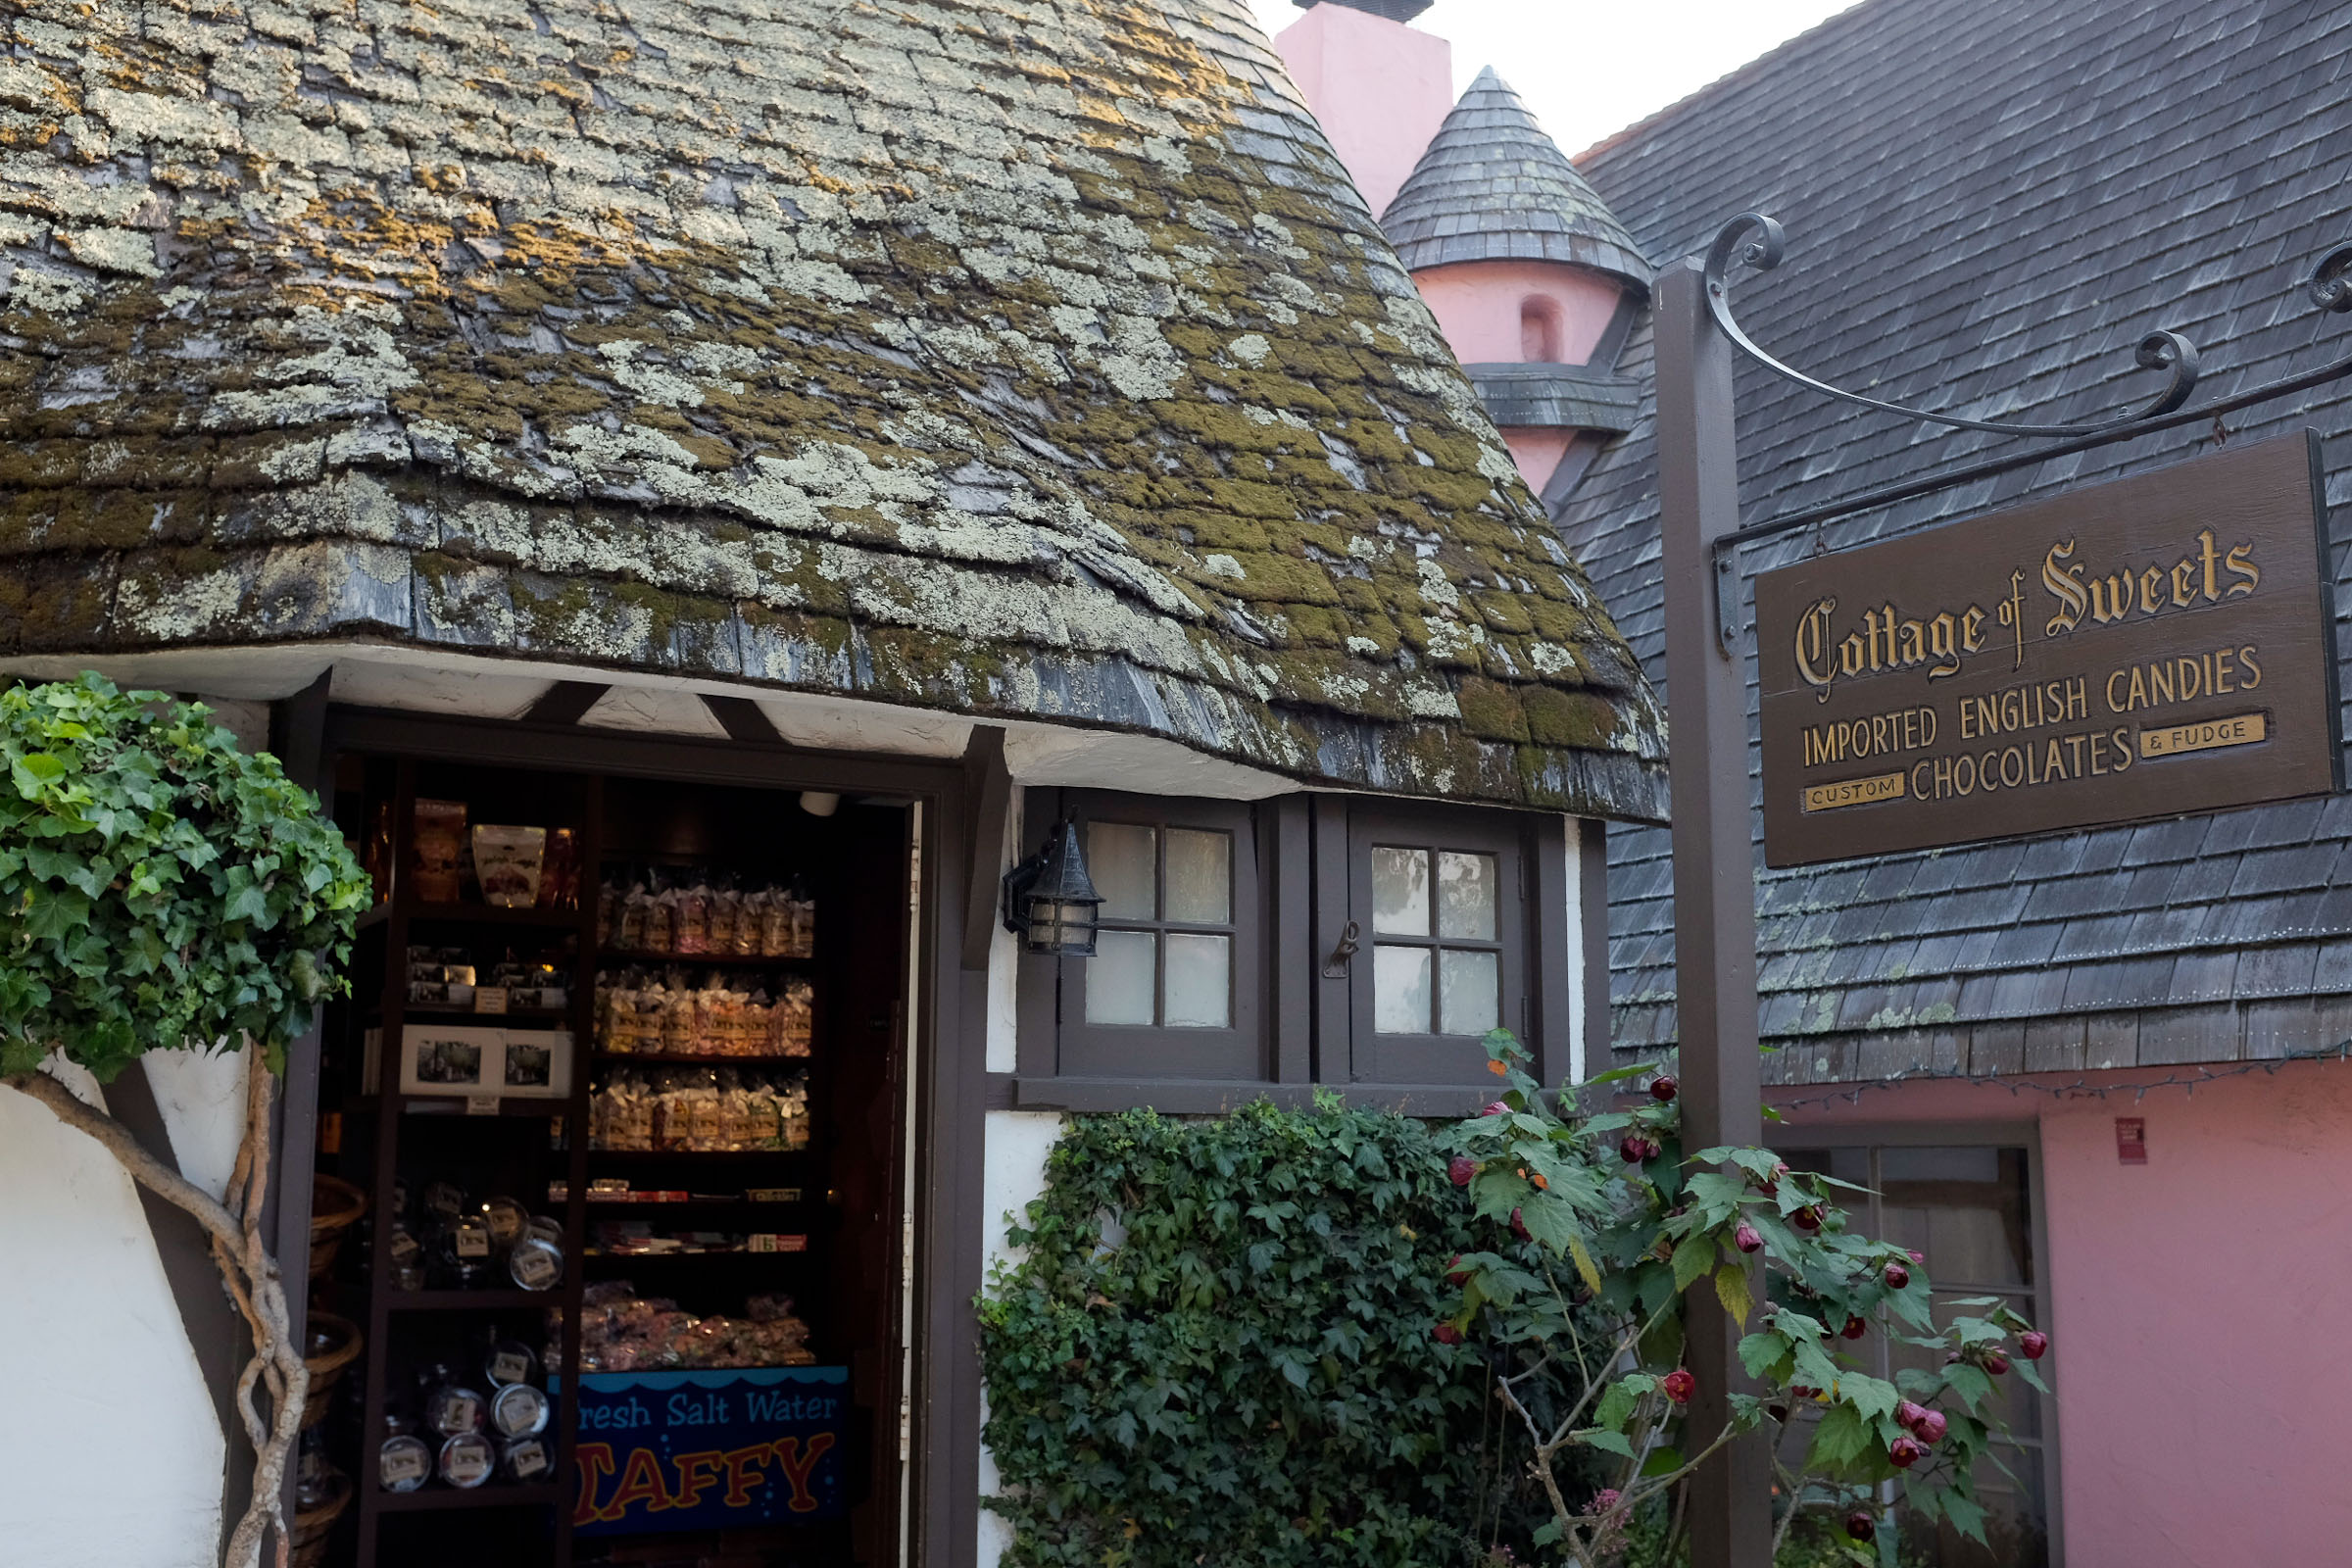 The Cottage of Sweets; home of the best dark chocolate almond turtles!